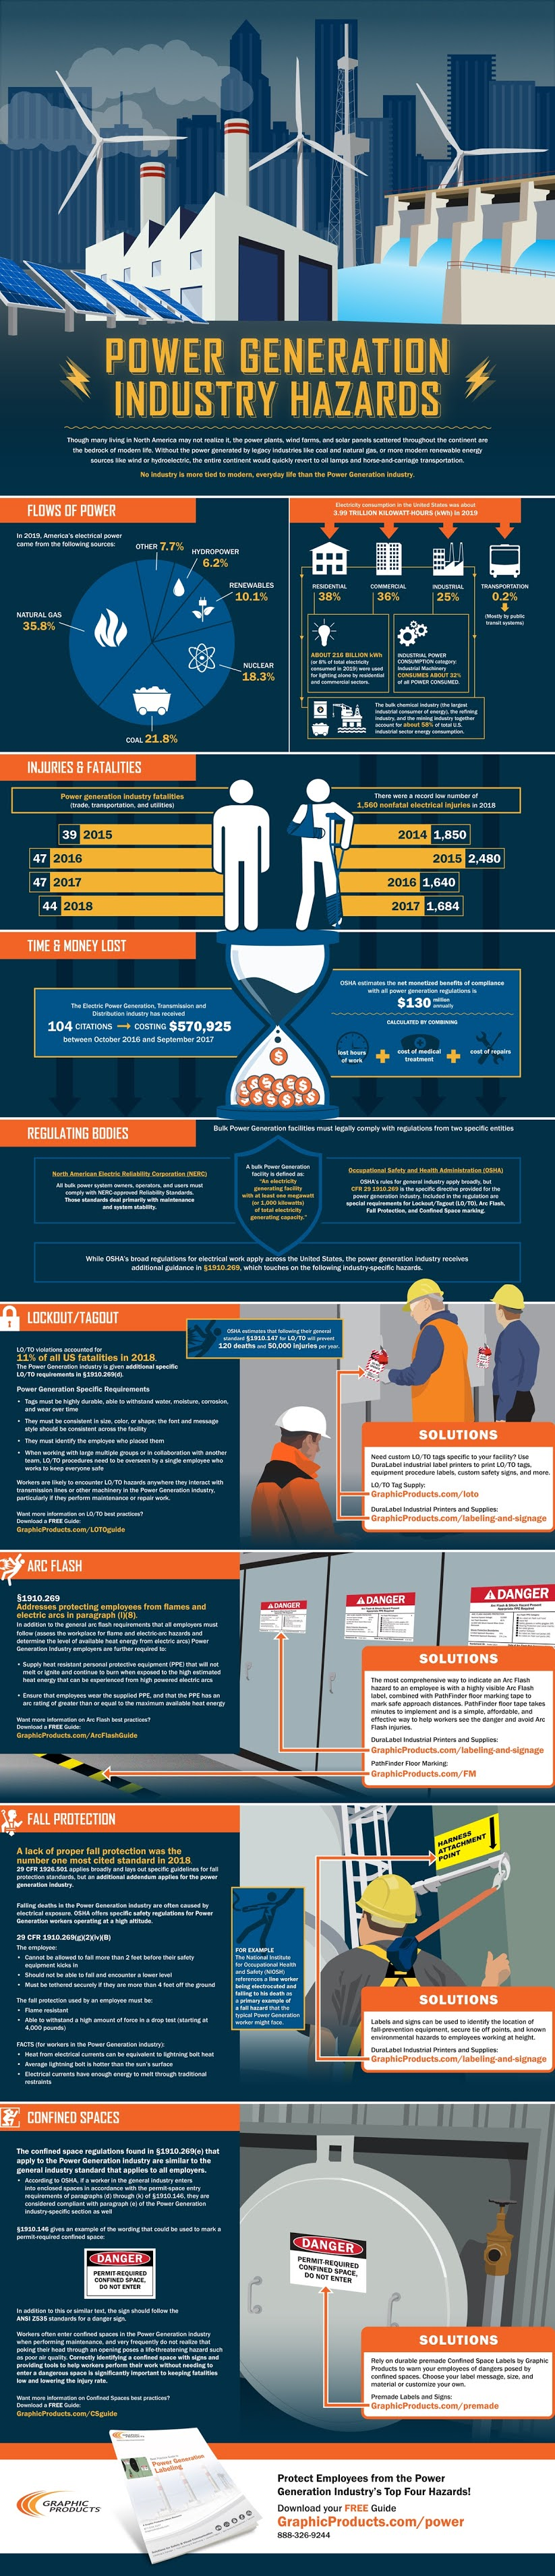 Power Generation Industry Hazards #infographic #Industry Hazards #infographics #Power Generation #Electrical Safety #Electric Power